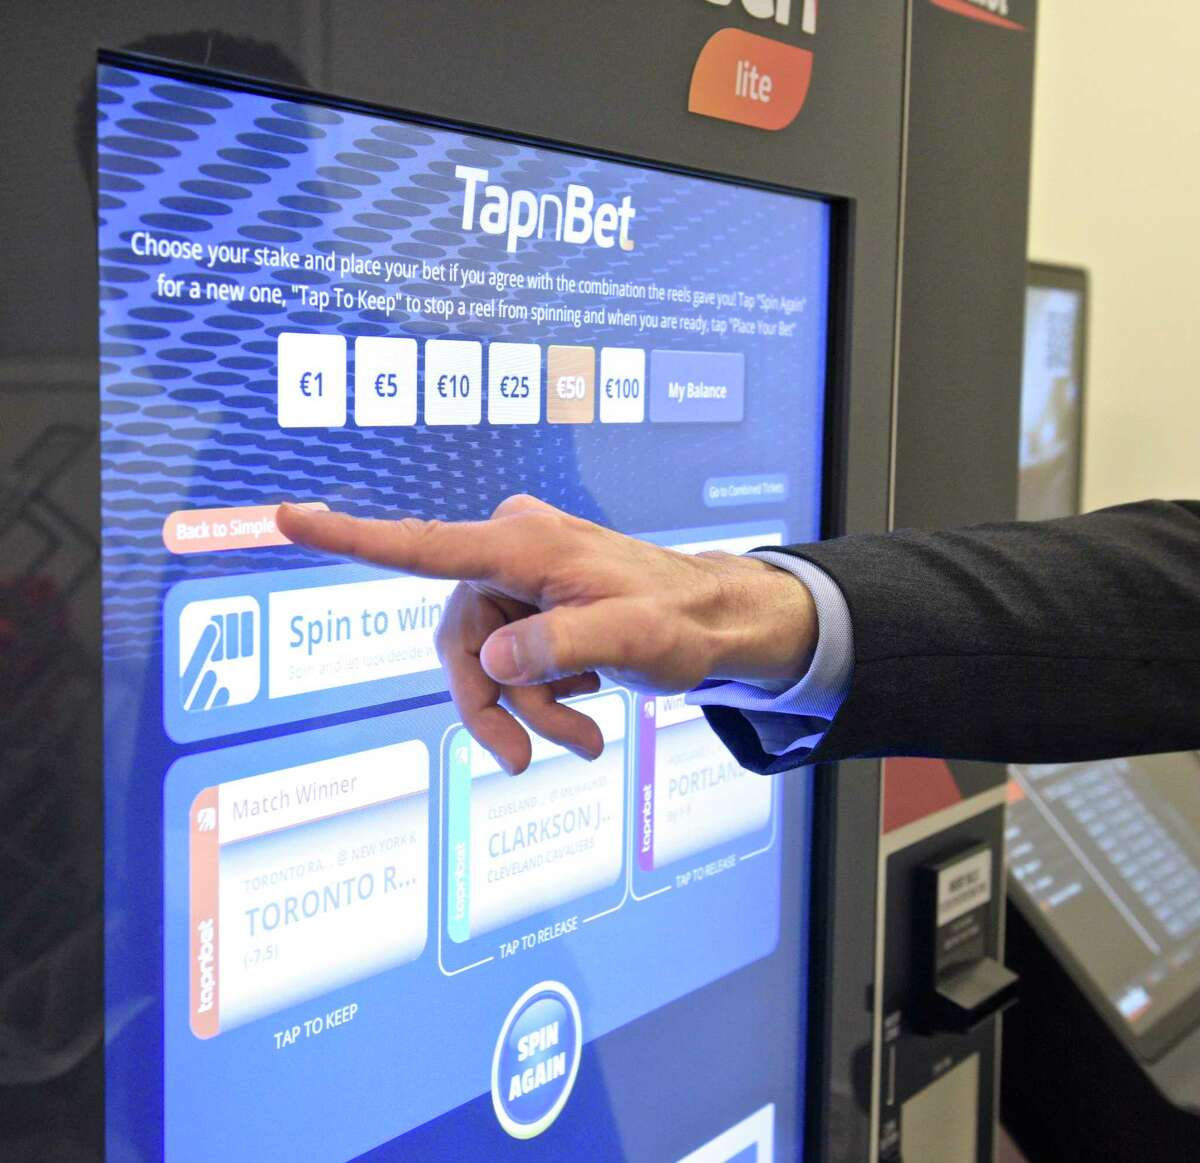 The president of a sports betting technology firm gives a presentation on a interactive betting terminal at a Connecticut Lottery-hosted interactive educational forum in 2019. The forum was to demonstrate some of the products that are available in the marketplace for online and mobile lottery and sports betting.